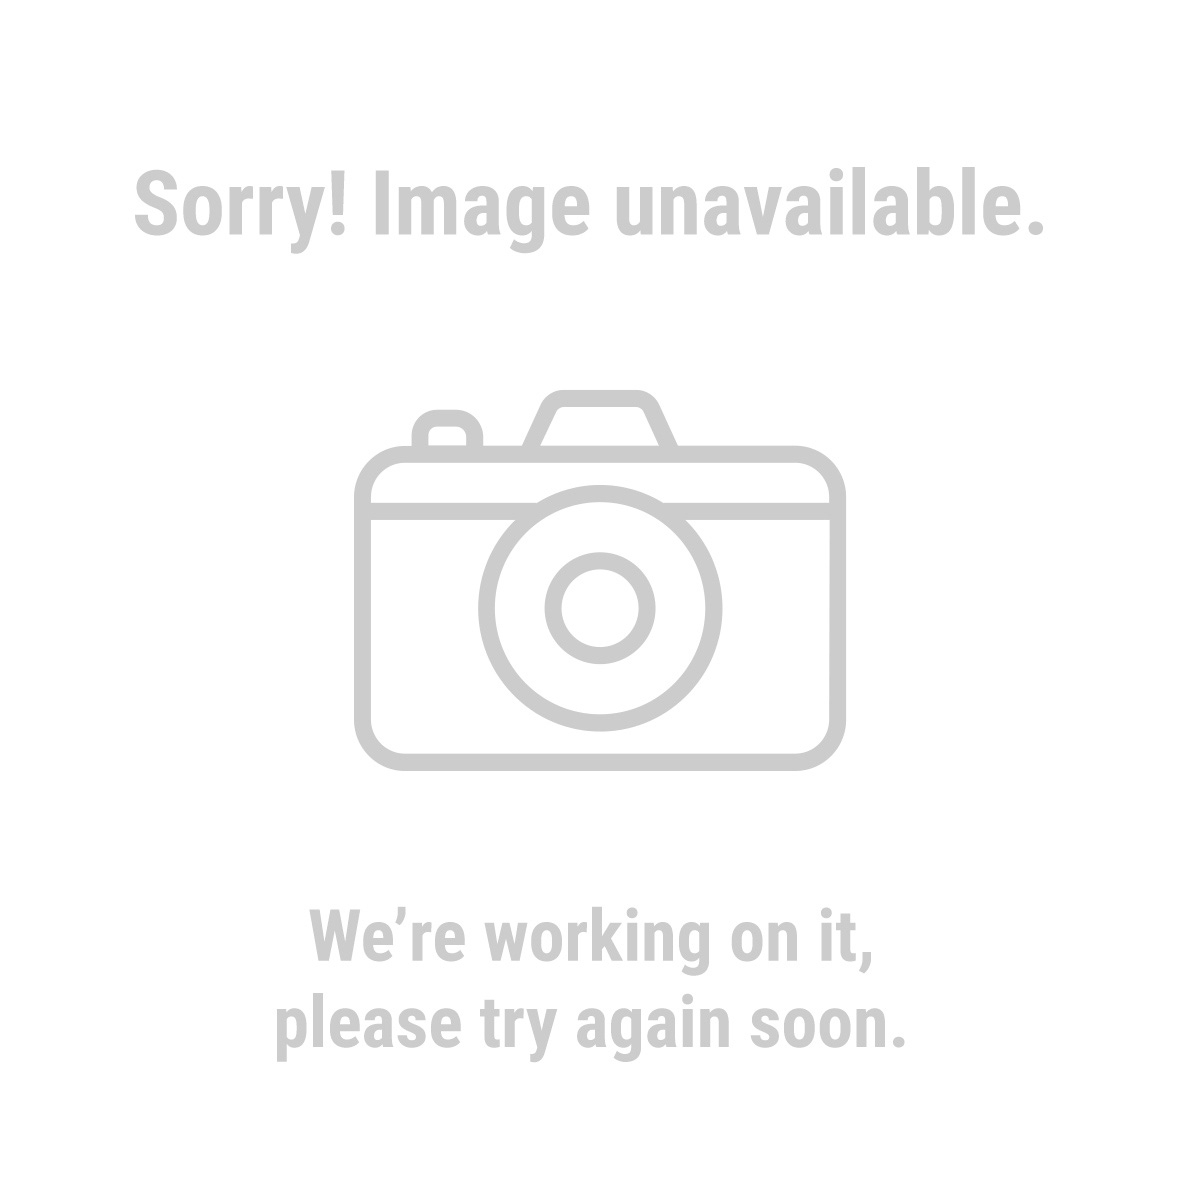 Haul-Master 69673 3500 Lb. Step Bumper Receiver